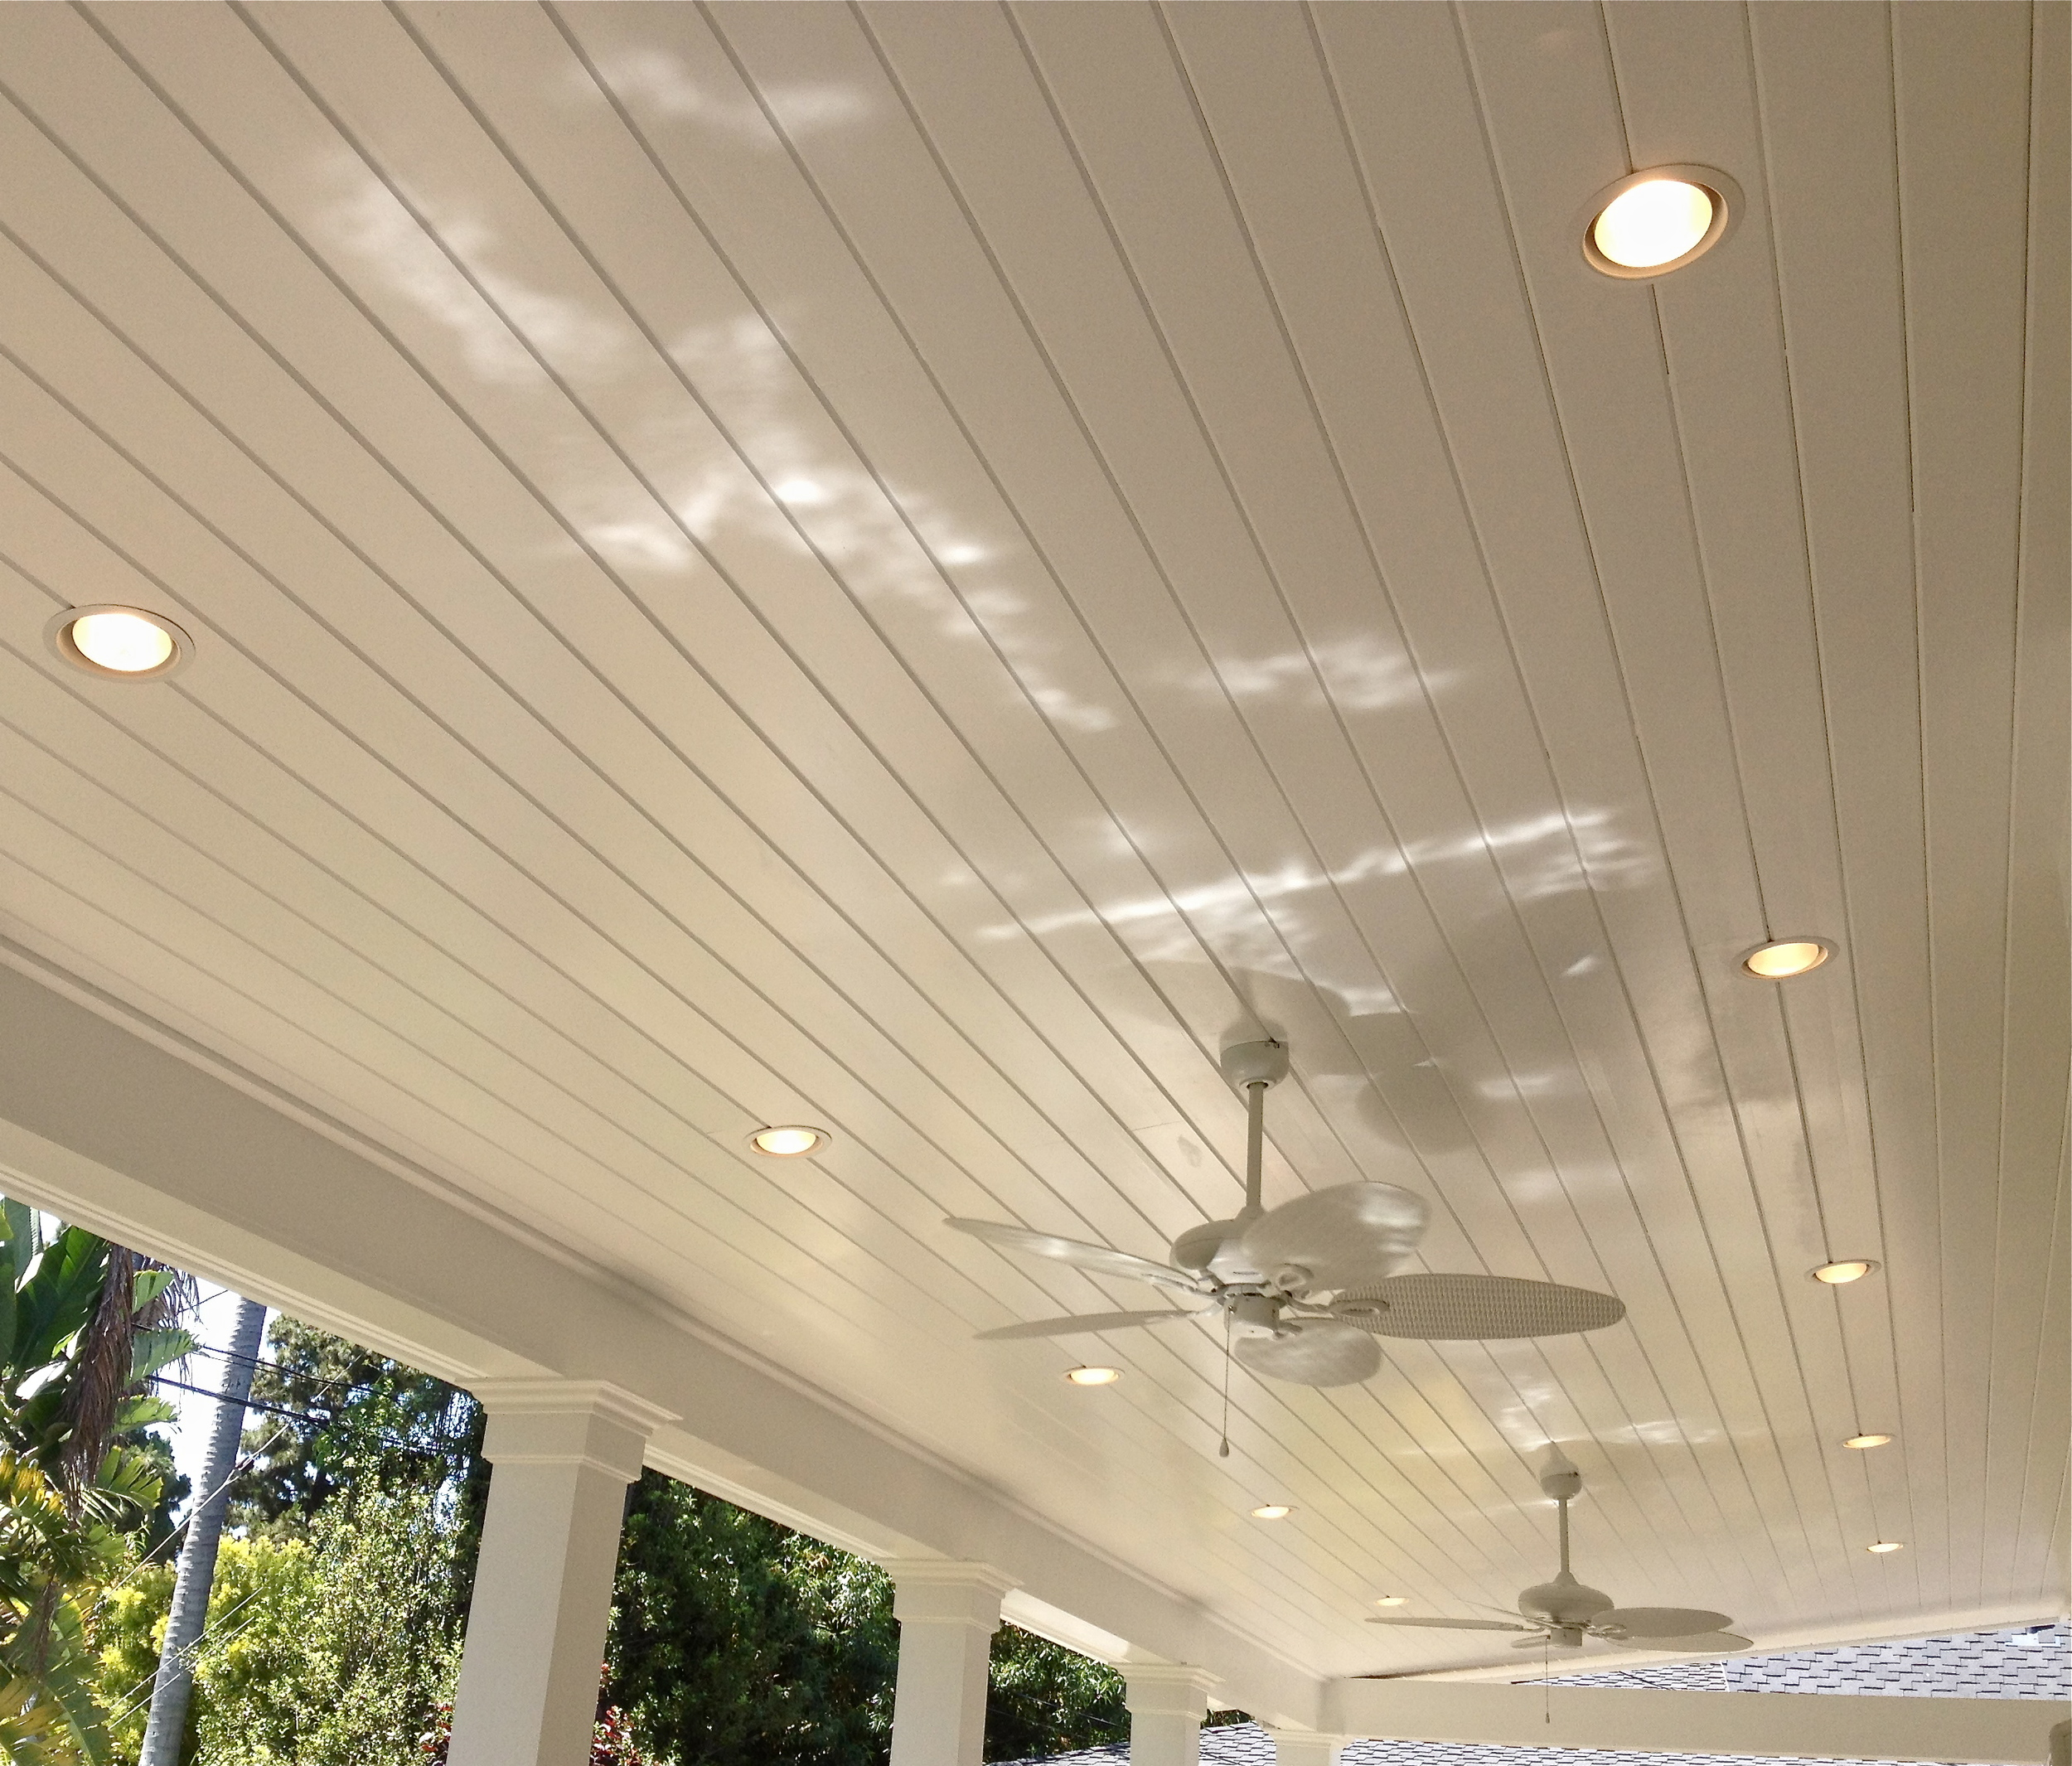 Outdoor Ceiling Fans and Recessed Lights